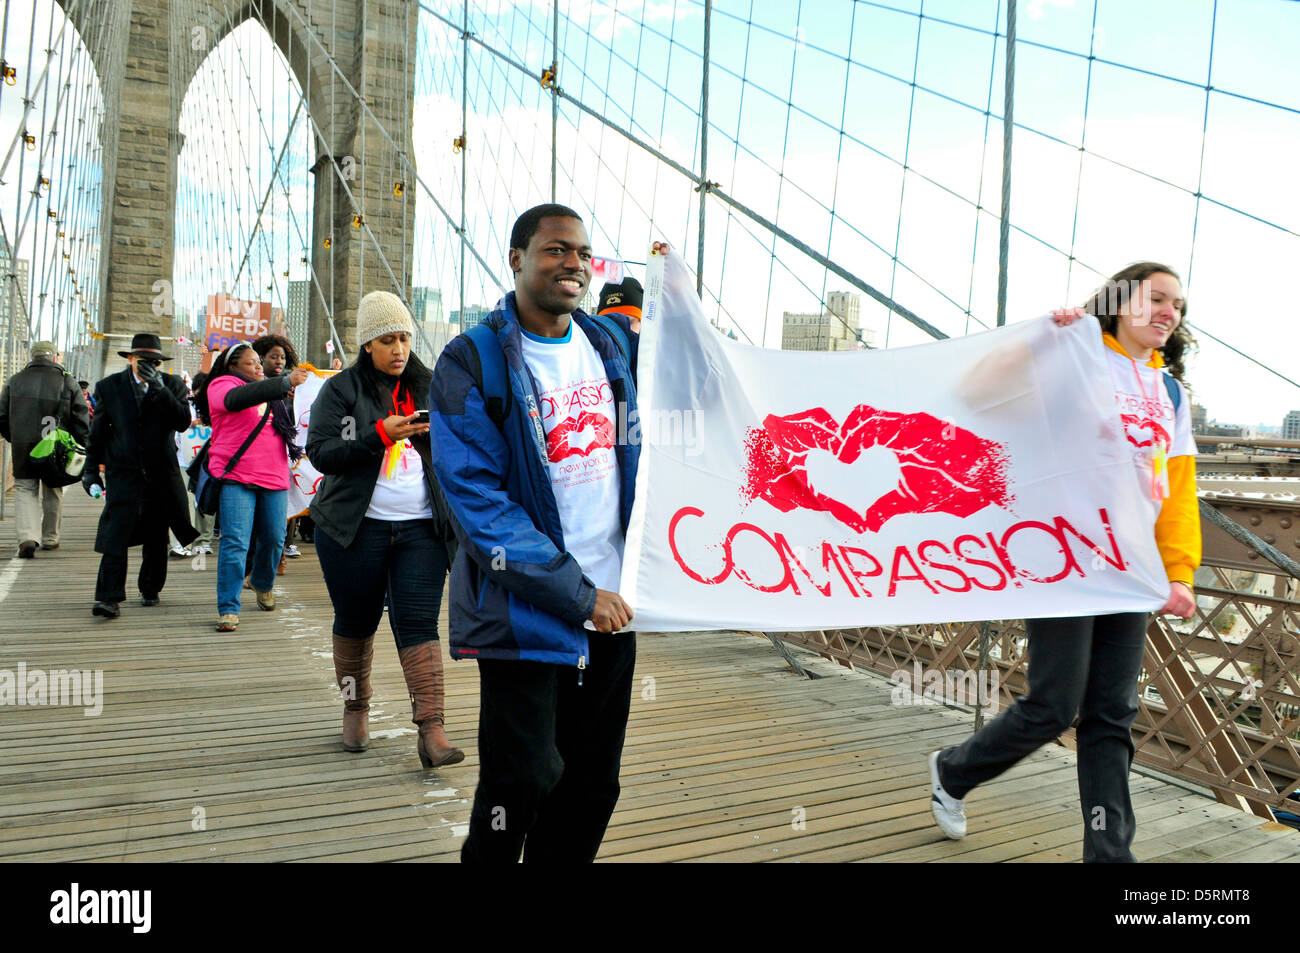 """Brooklyn Bridge during the annual Anti-Violence """"Compassion"""" rally... Stock Photo"""